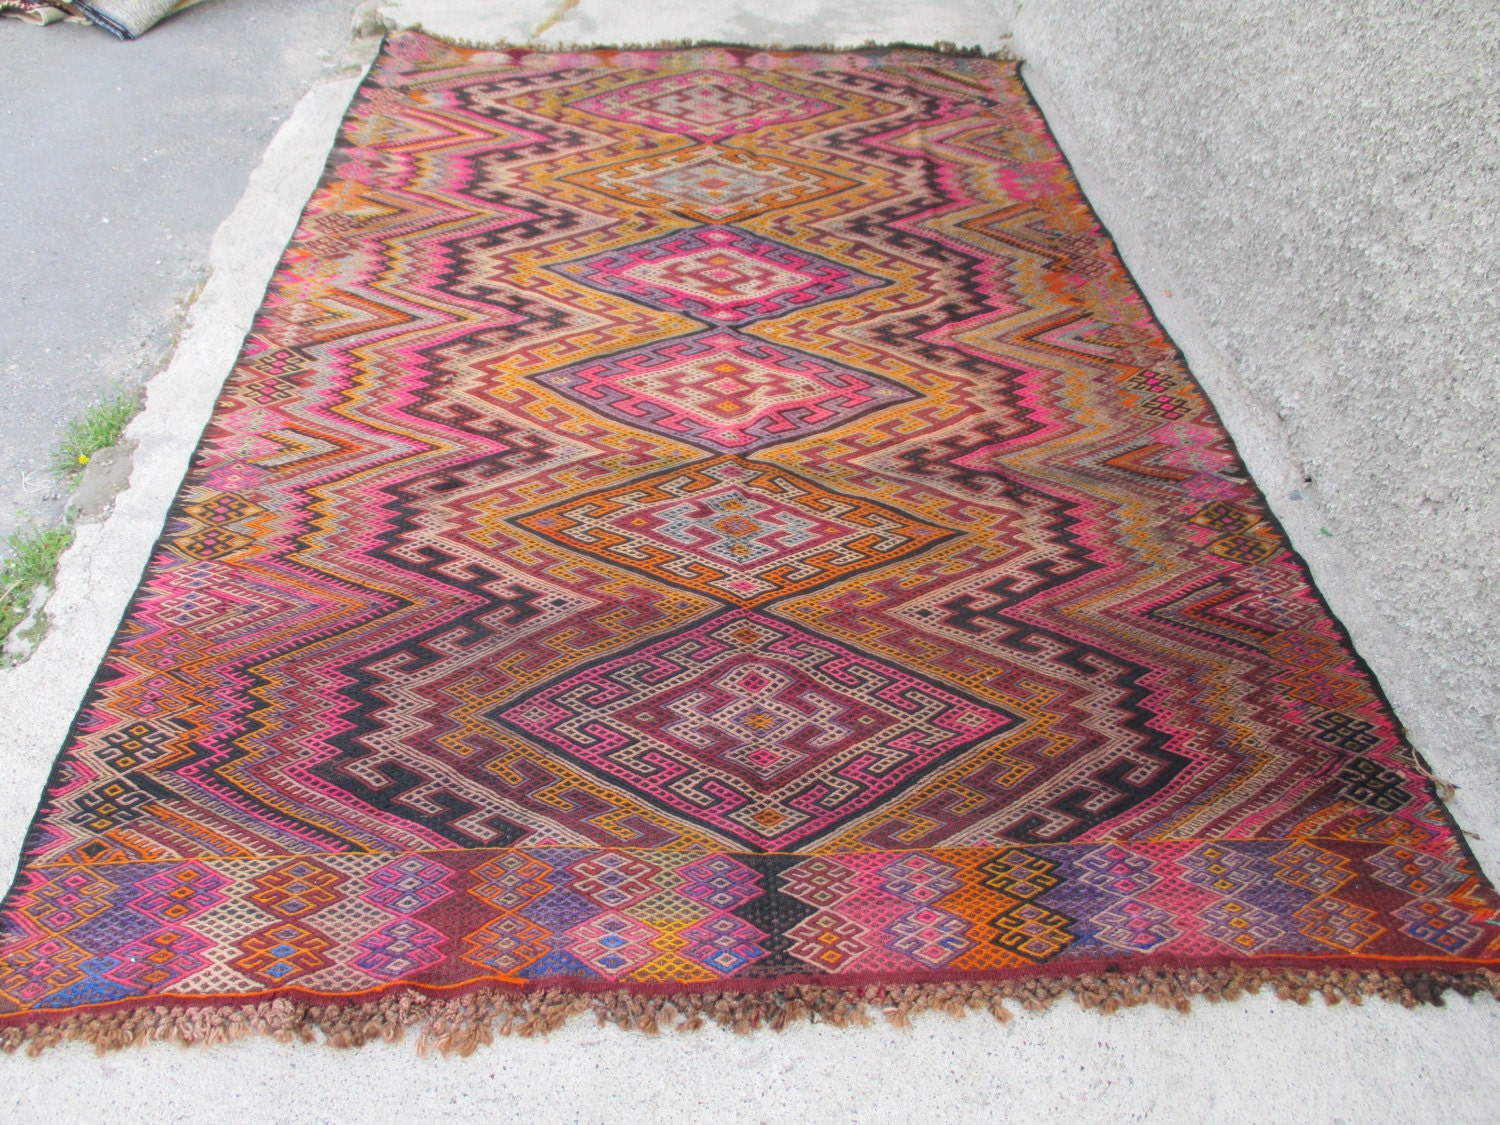 Vintage Kilim Rug Home Decor Rug Turkish Kilim Rug Multi Color